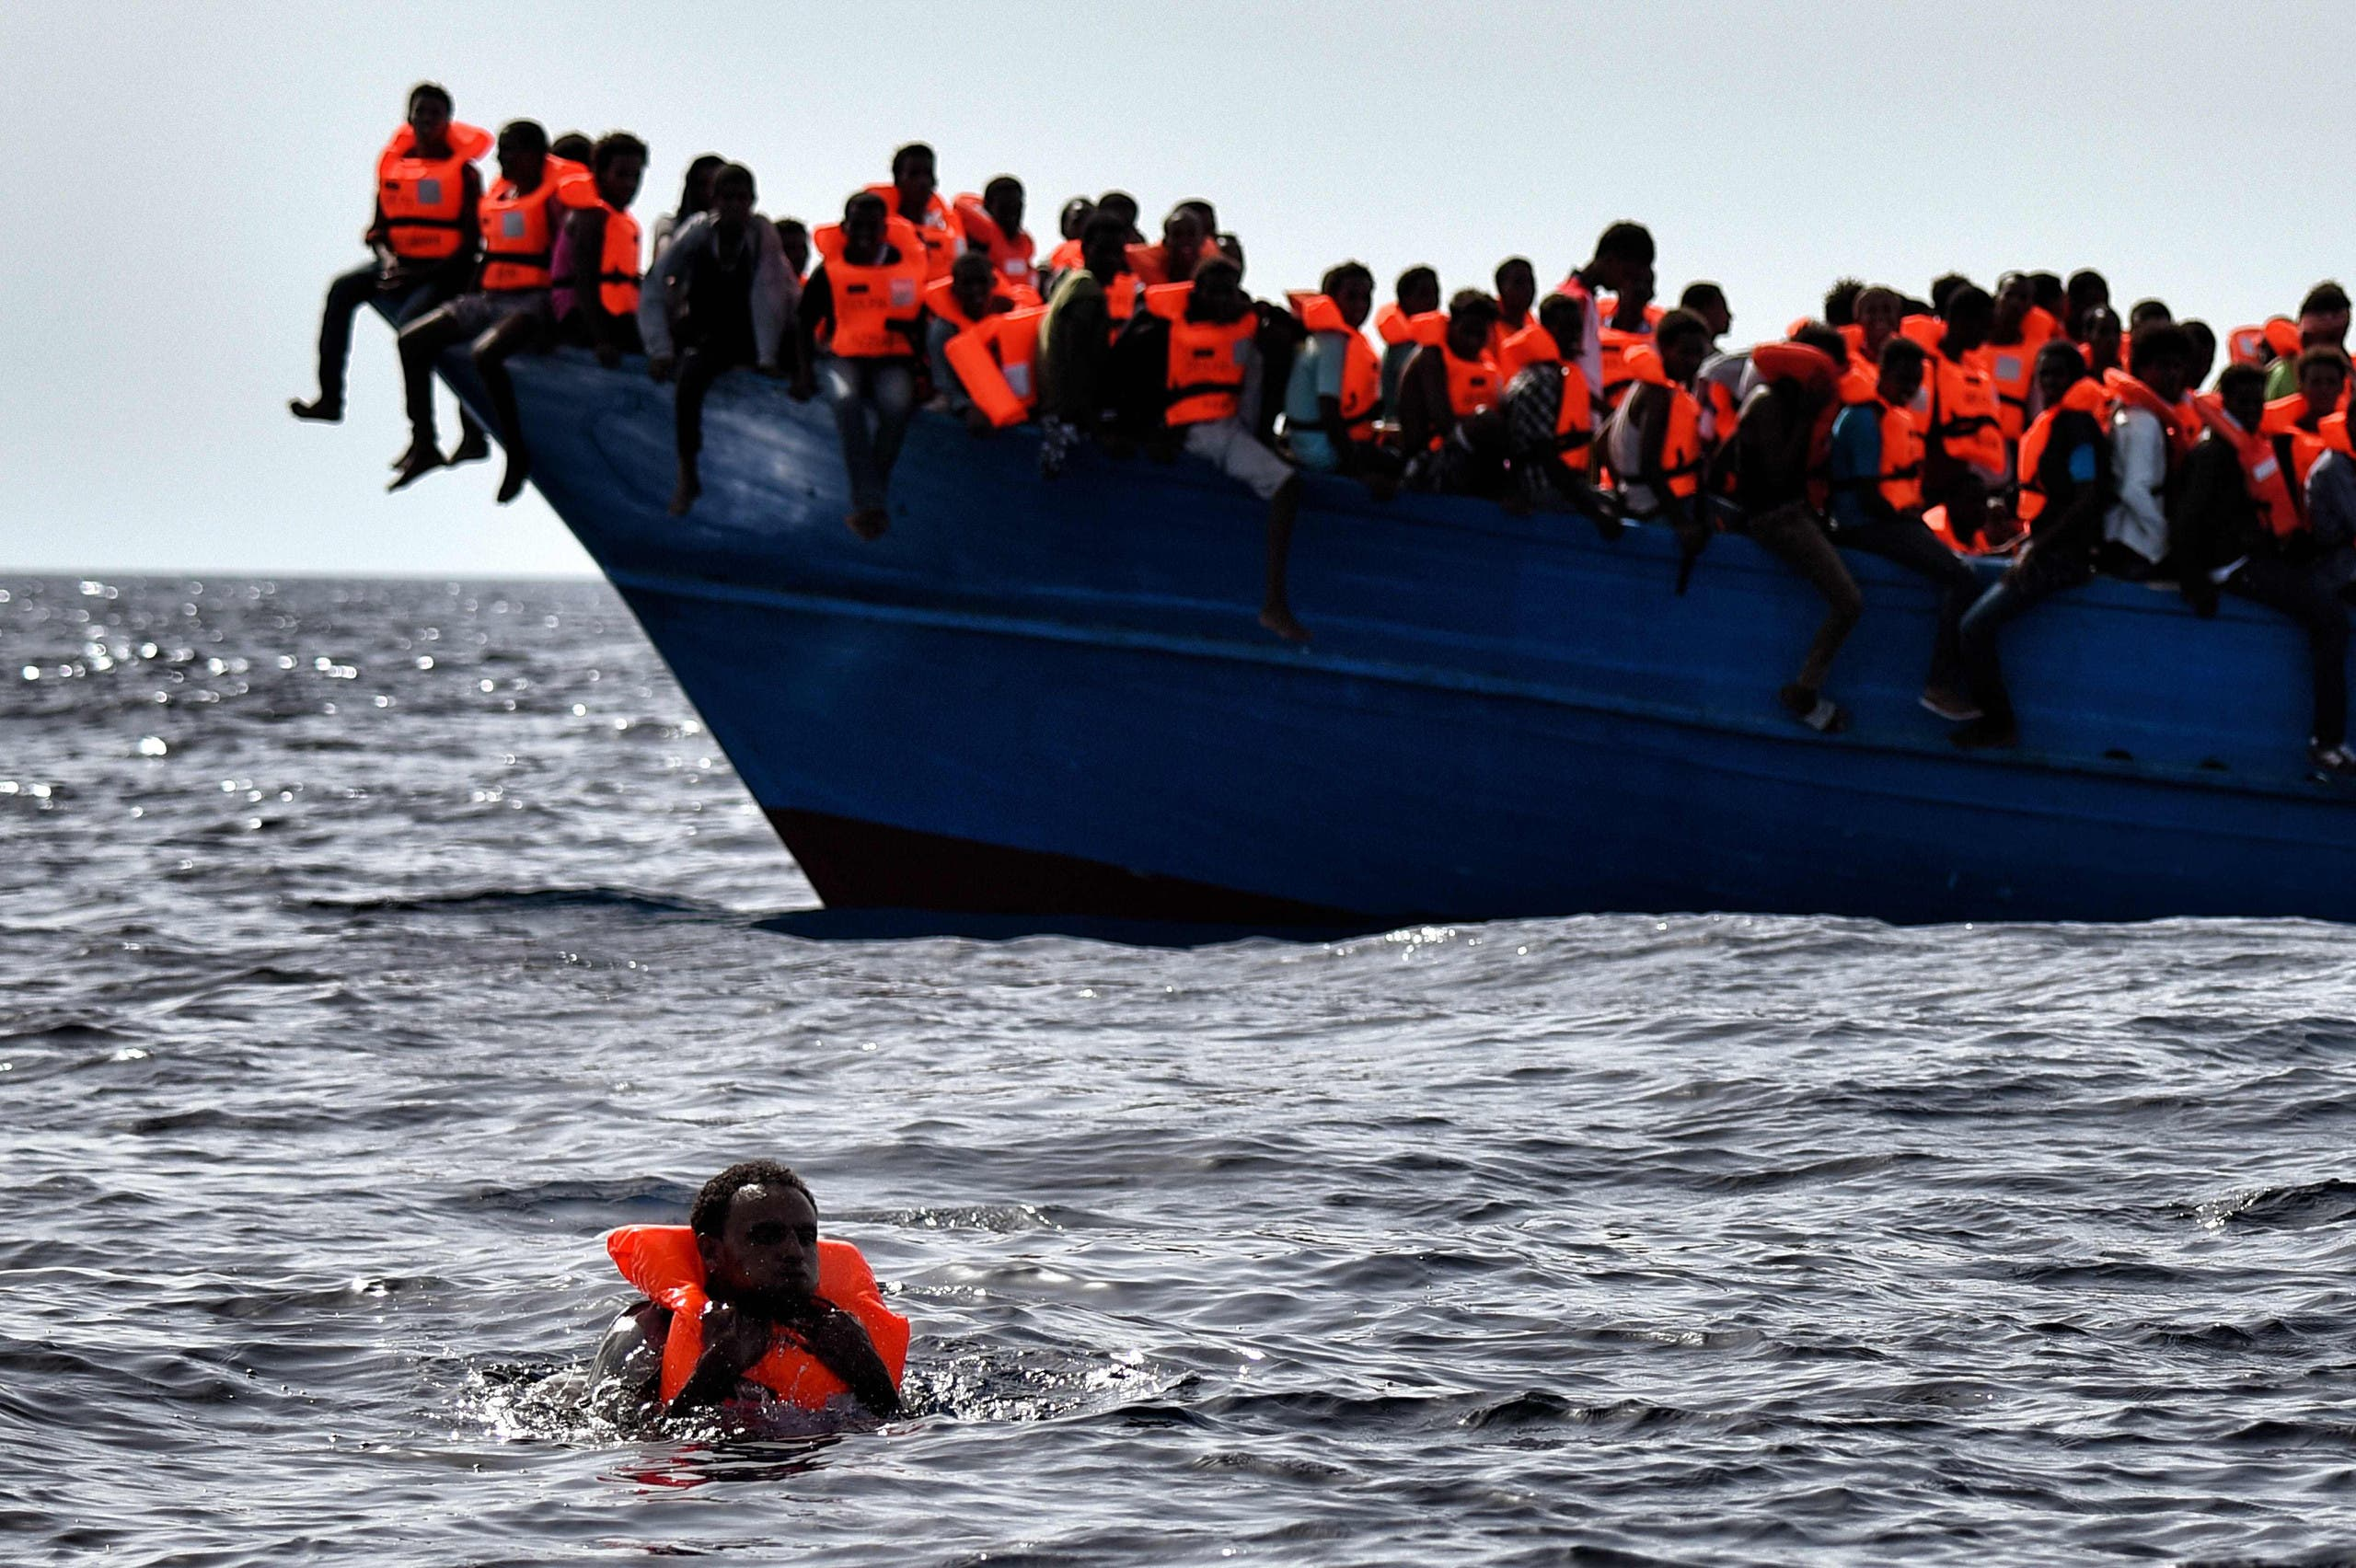 Migrants wait to be rescued as they drift in the Mediterranean Sea some 20 nautical miles north off the coast of Libya on October 3, 2016. Italy coordinated the rescue of more than 5,600 migrants off Libya, three years to the day after 366 people died in a sinking that first alerted the world to the Mediterranean migrant crisis. (AFP)